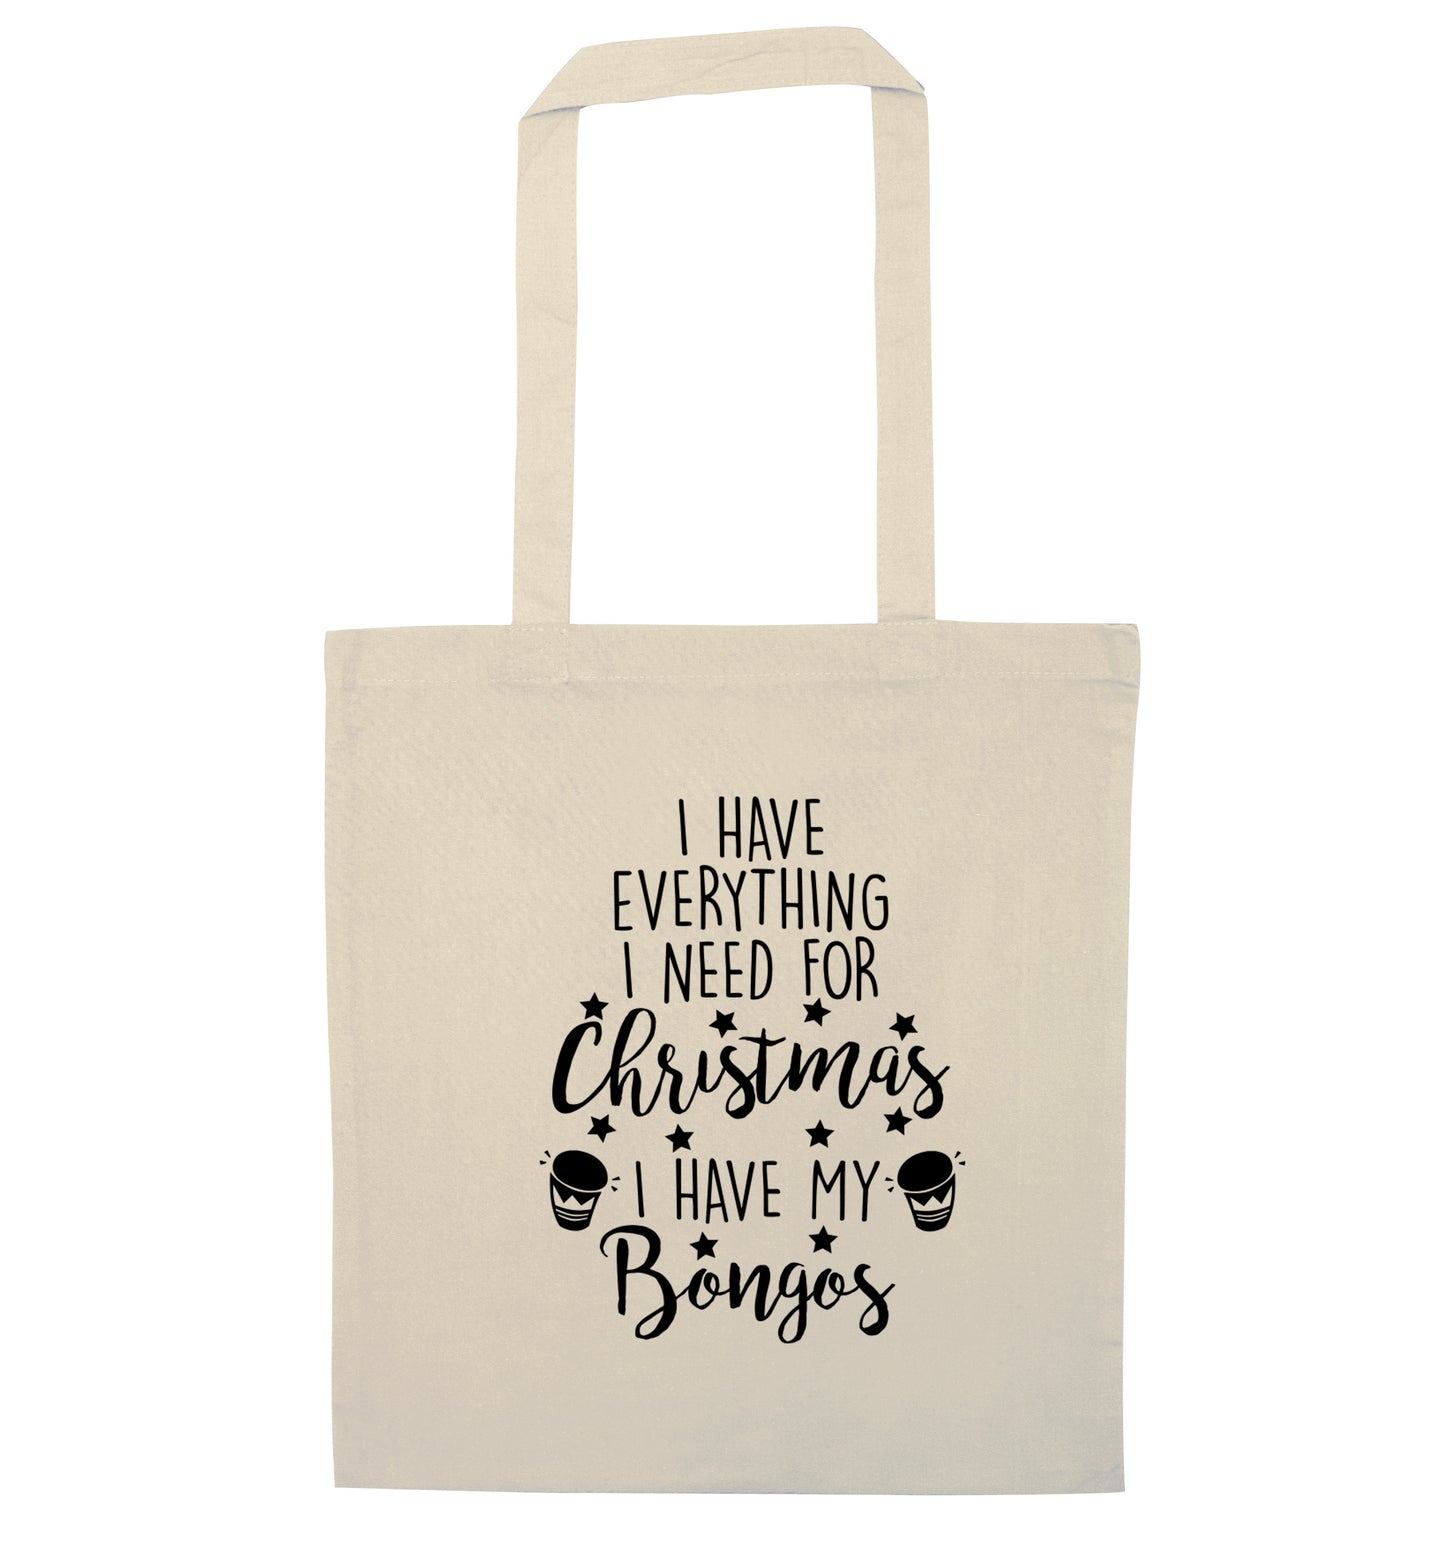 I have everything I need for Christmas I have my bongos! natural tote bag